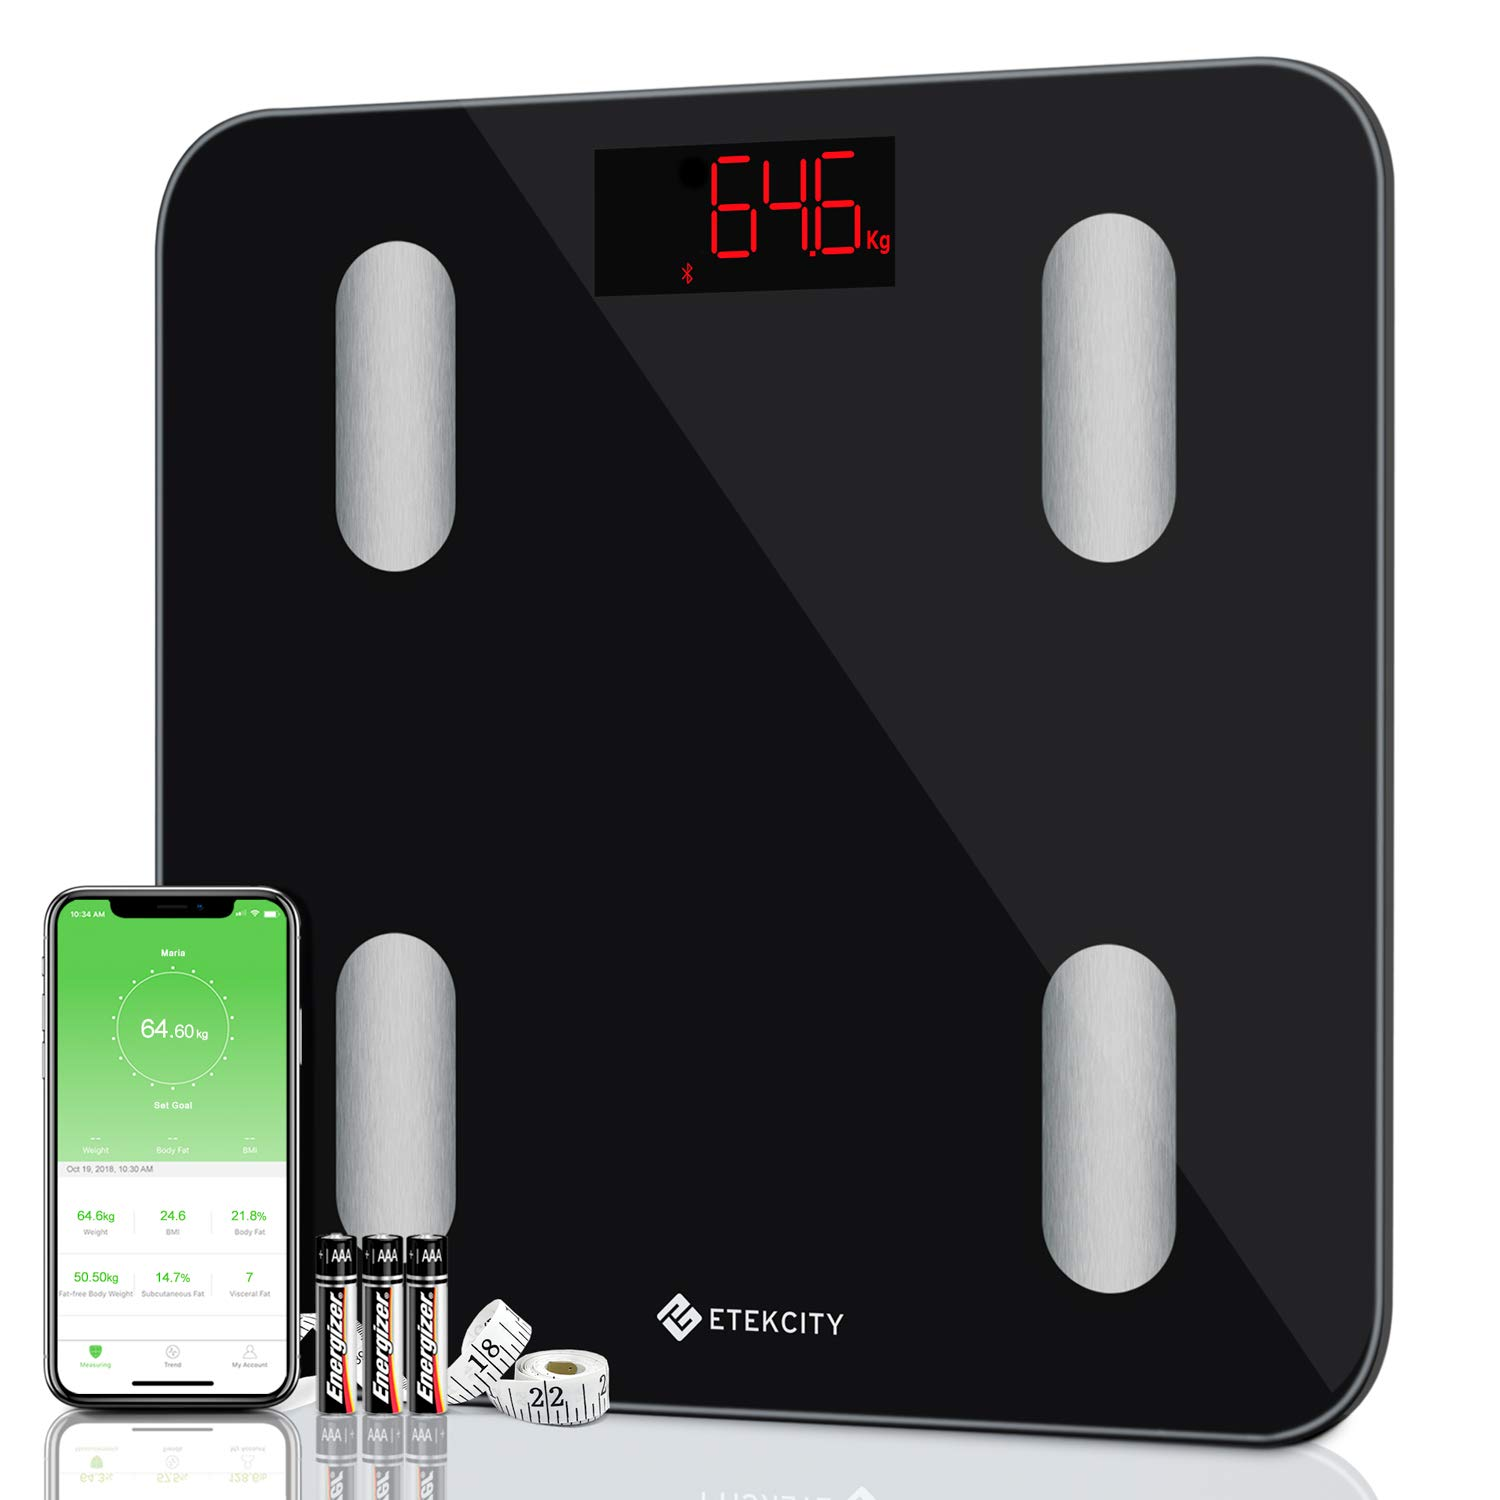 Etekcity Bluetooth Body Fat Scales, Digital Weight Bathroom Scales, High  Precision Weighing Scale for Body Composition Analyzer, Smart APP for Body